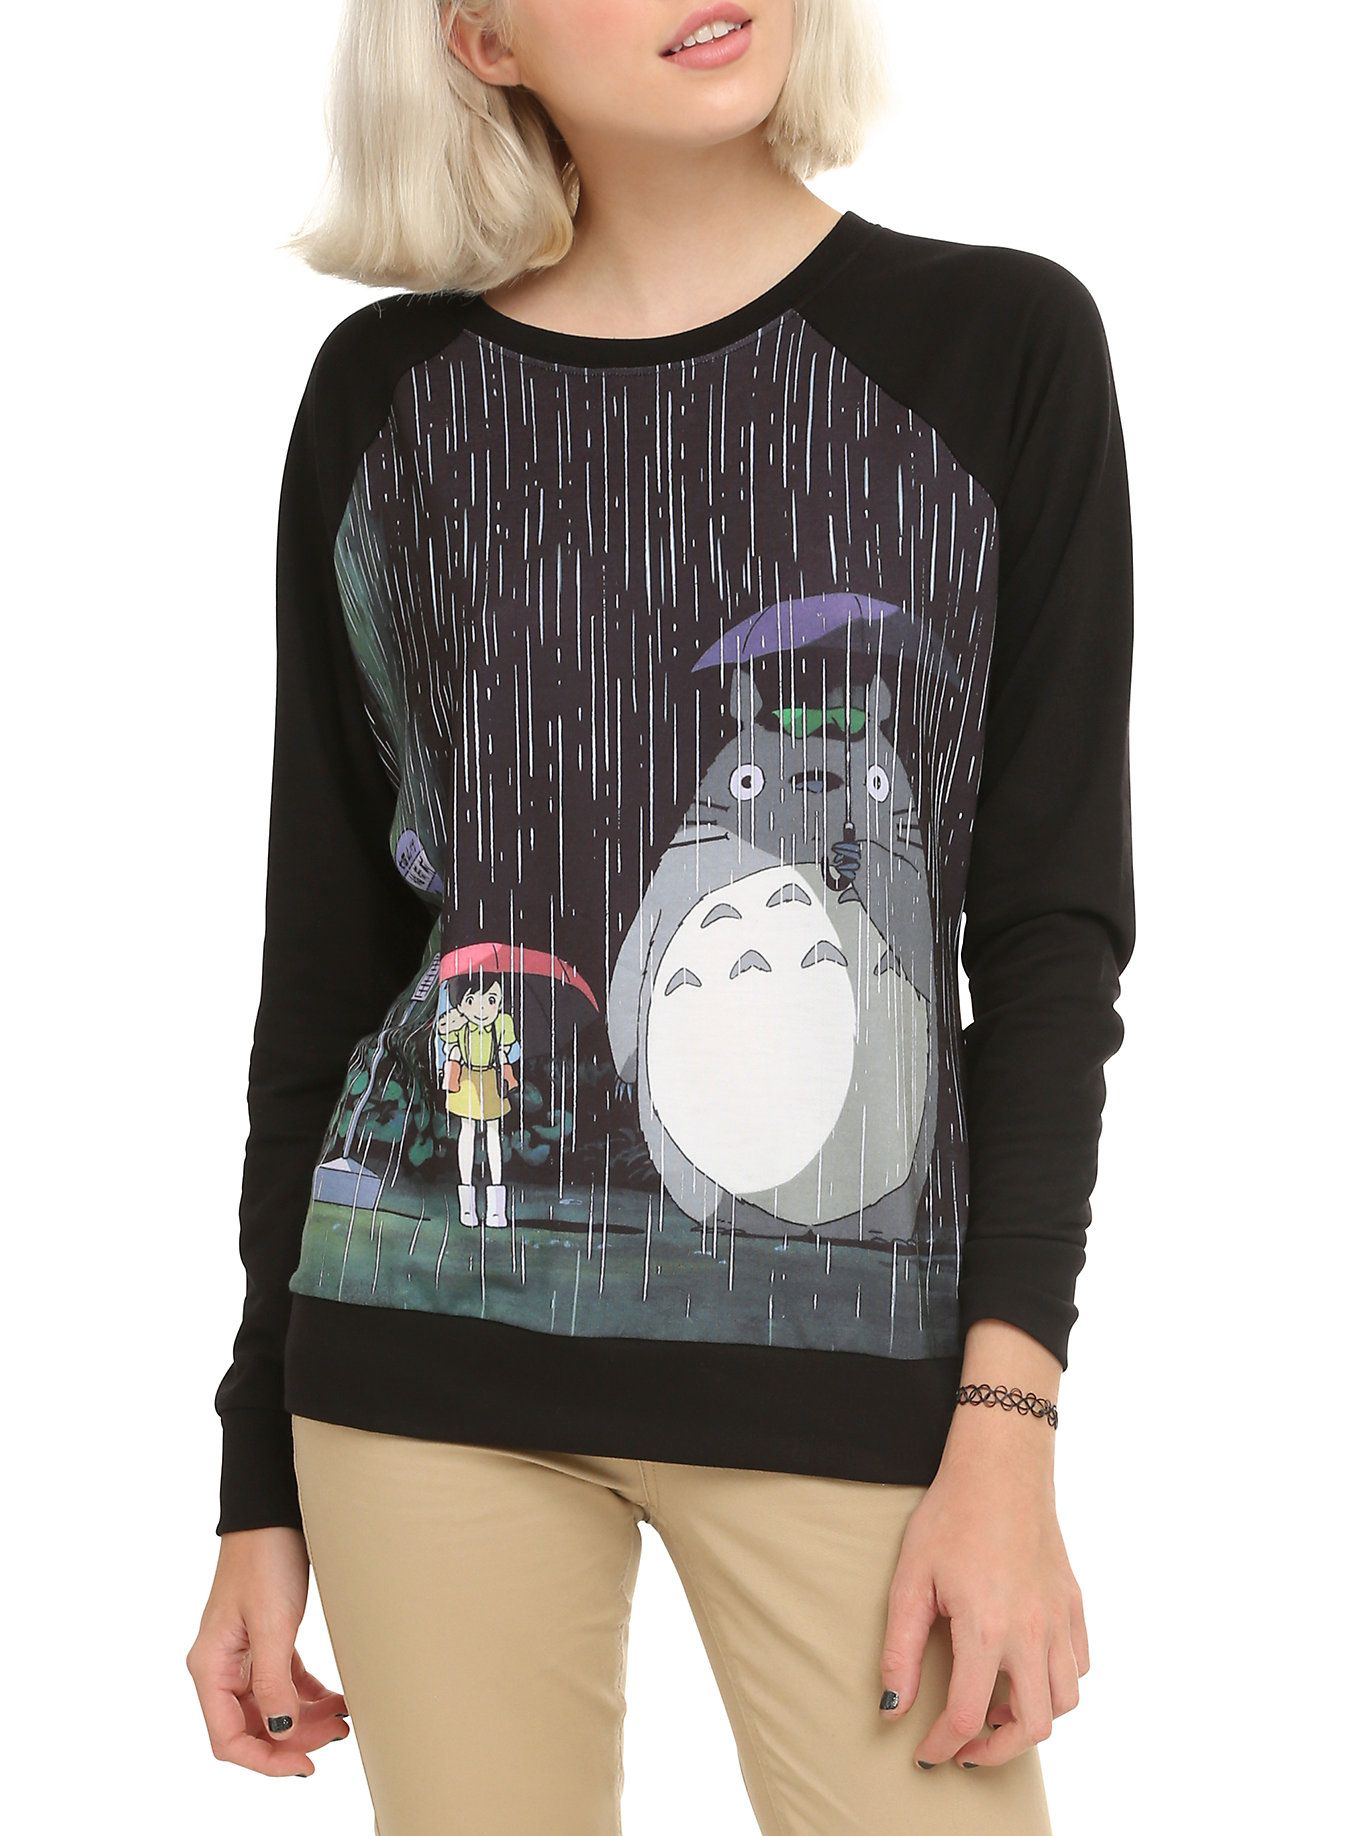 Studio Ghibli Her Universe My Neighbor Totoro At The Bus Stop Girls Pullover Top Hot Topic Clothes Girls Pullovers Studio Ghibli [ 1836 x 1360 Pixel ]